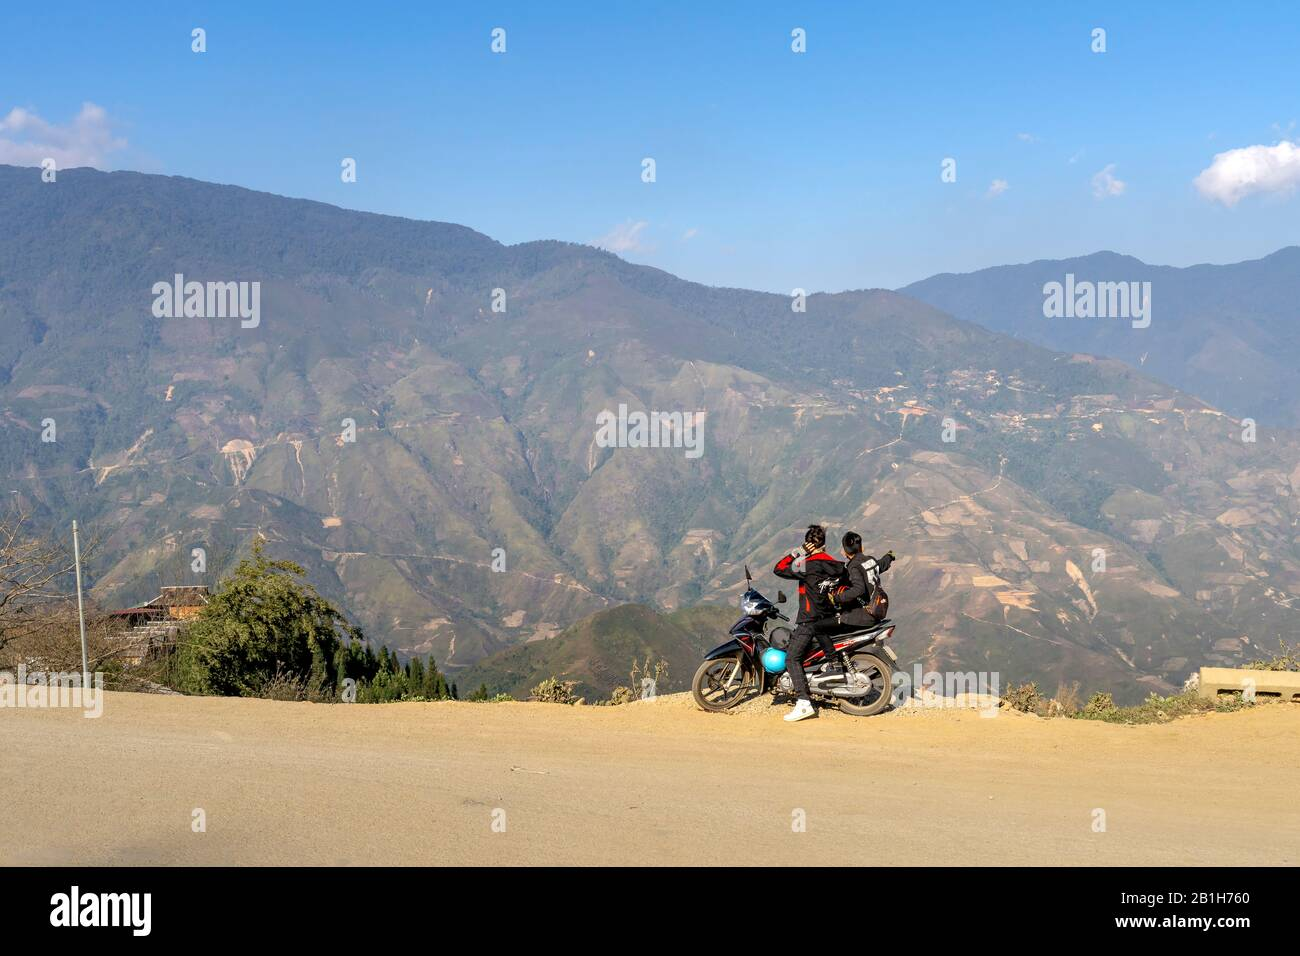 Ta Xua, Son La province, Vietnam - January 21, 2020: tourists admire the majestic scenery of Ta Xua in Son La province, Vietnam Stock Photo